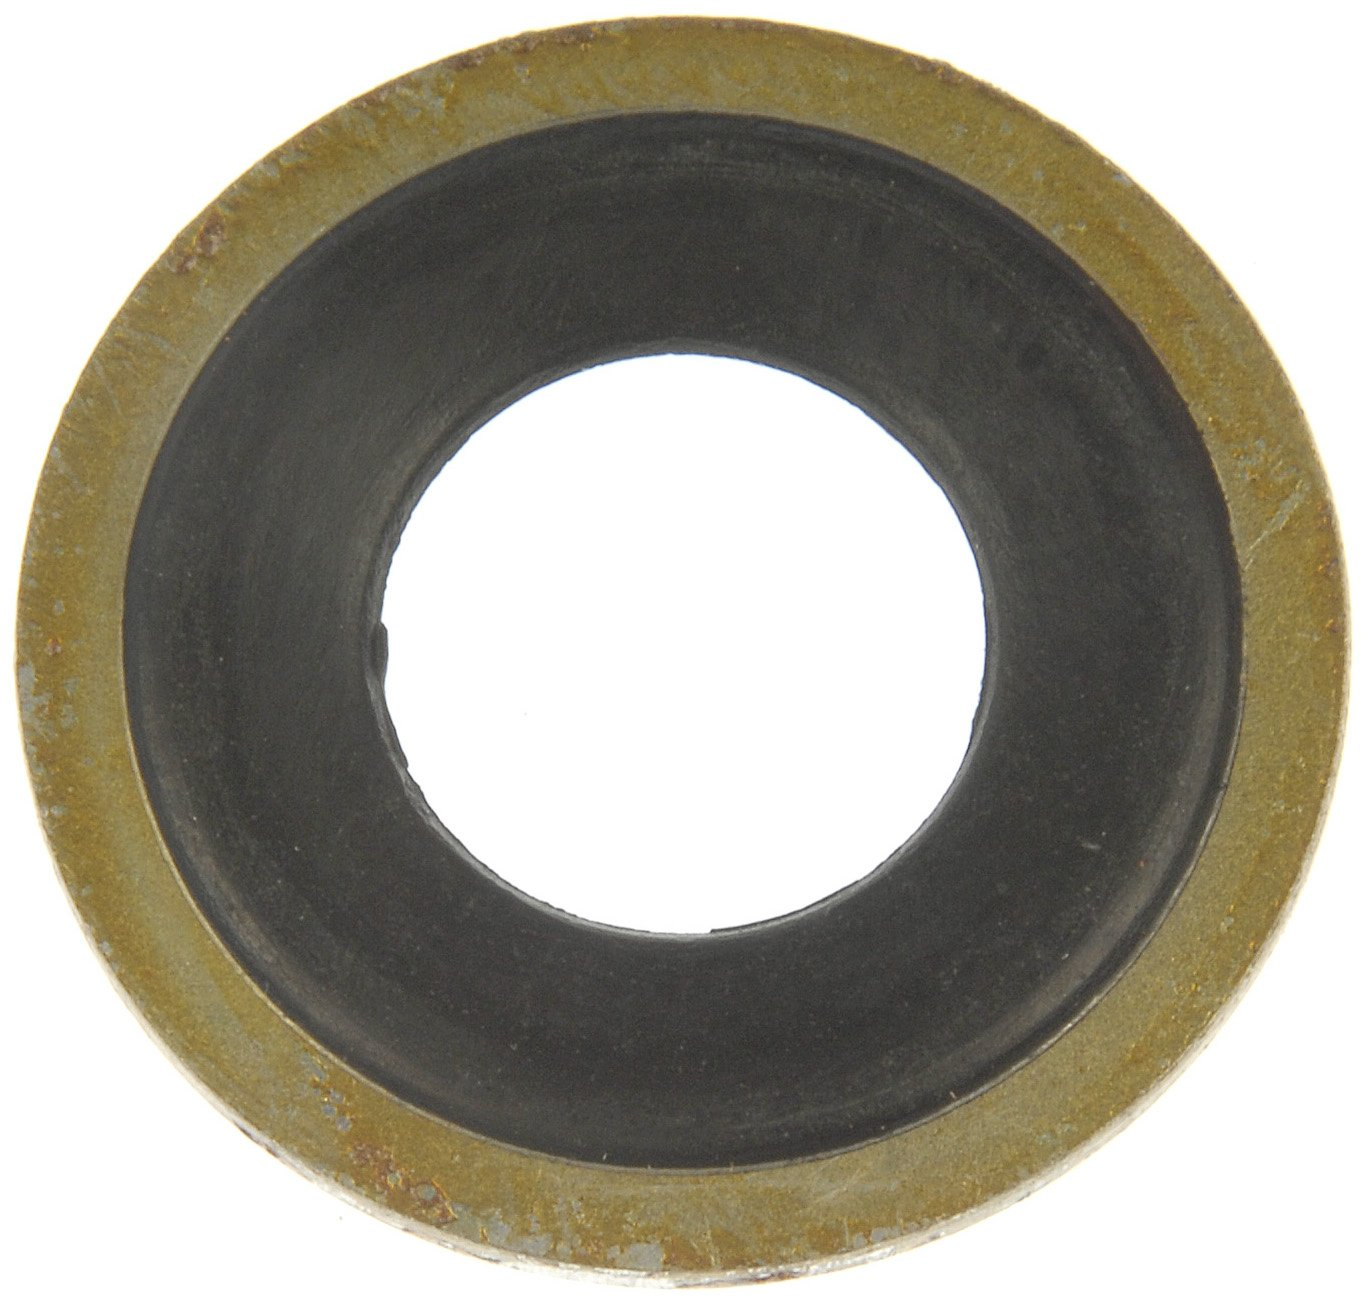 Dorman 65274 Metal/Rubber Oil Drain Plug Gasket, Pack of 2 Dorman - Autograde DOR65274